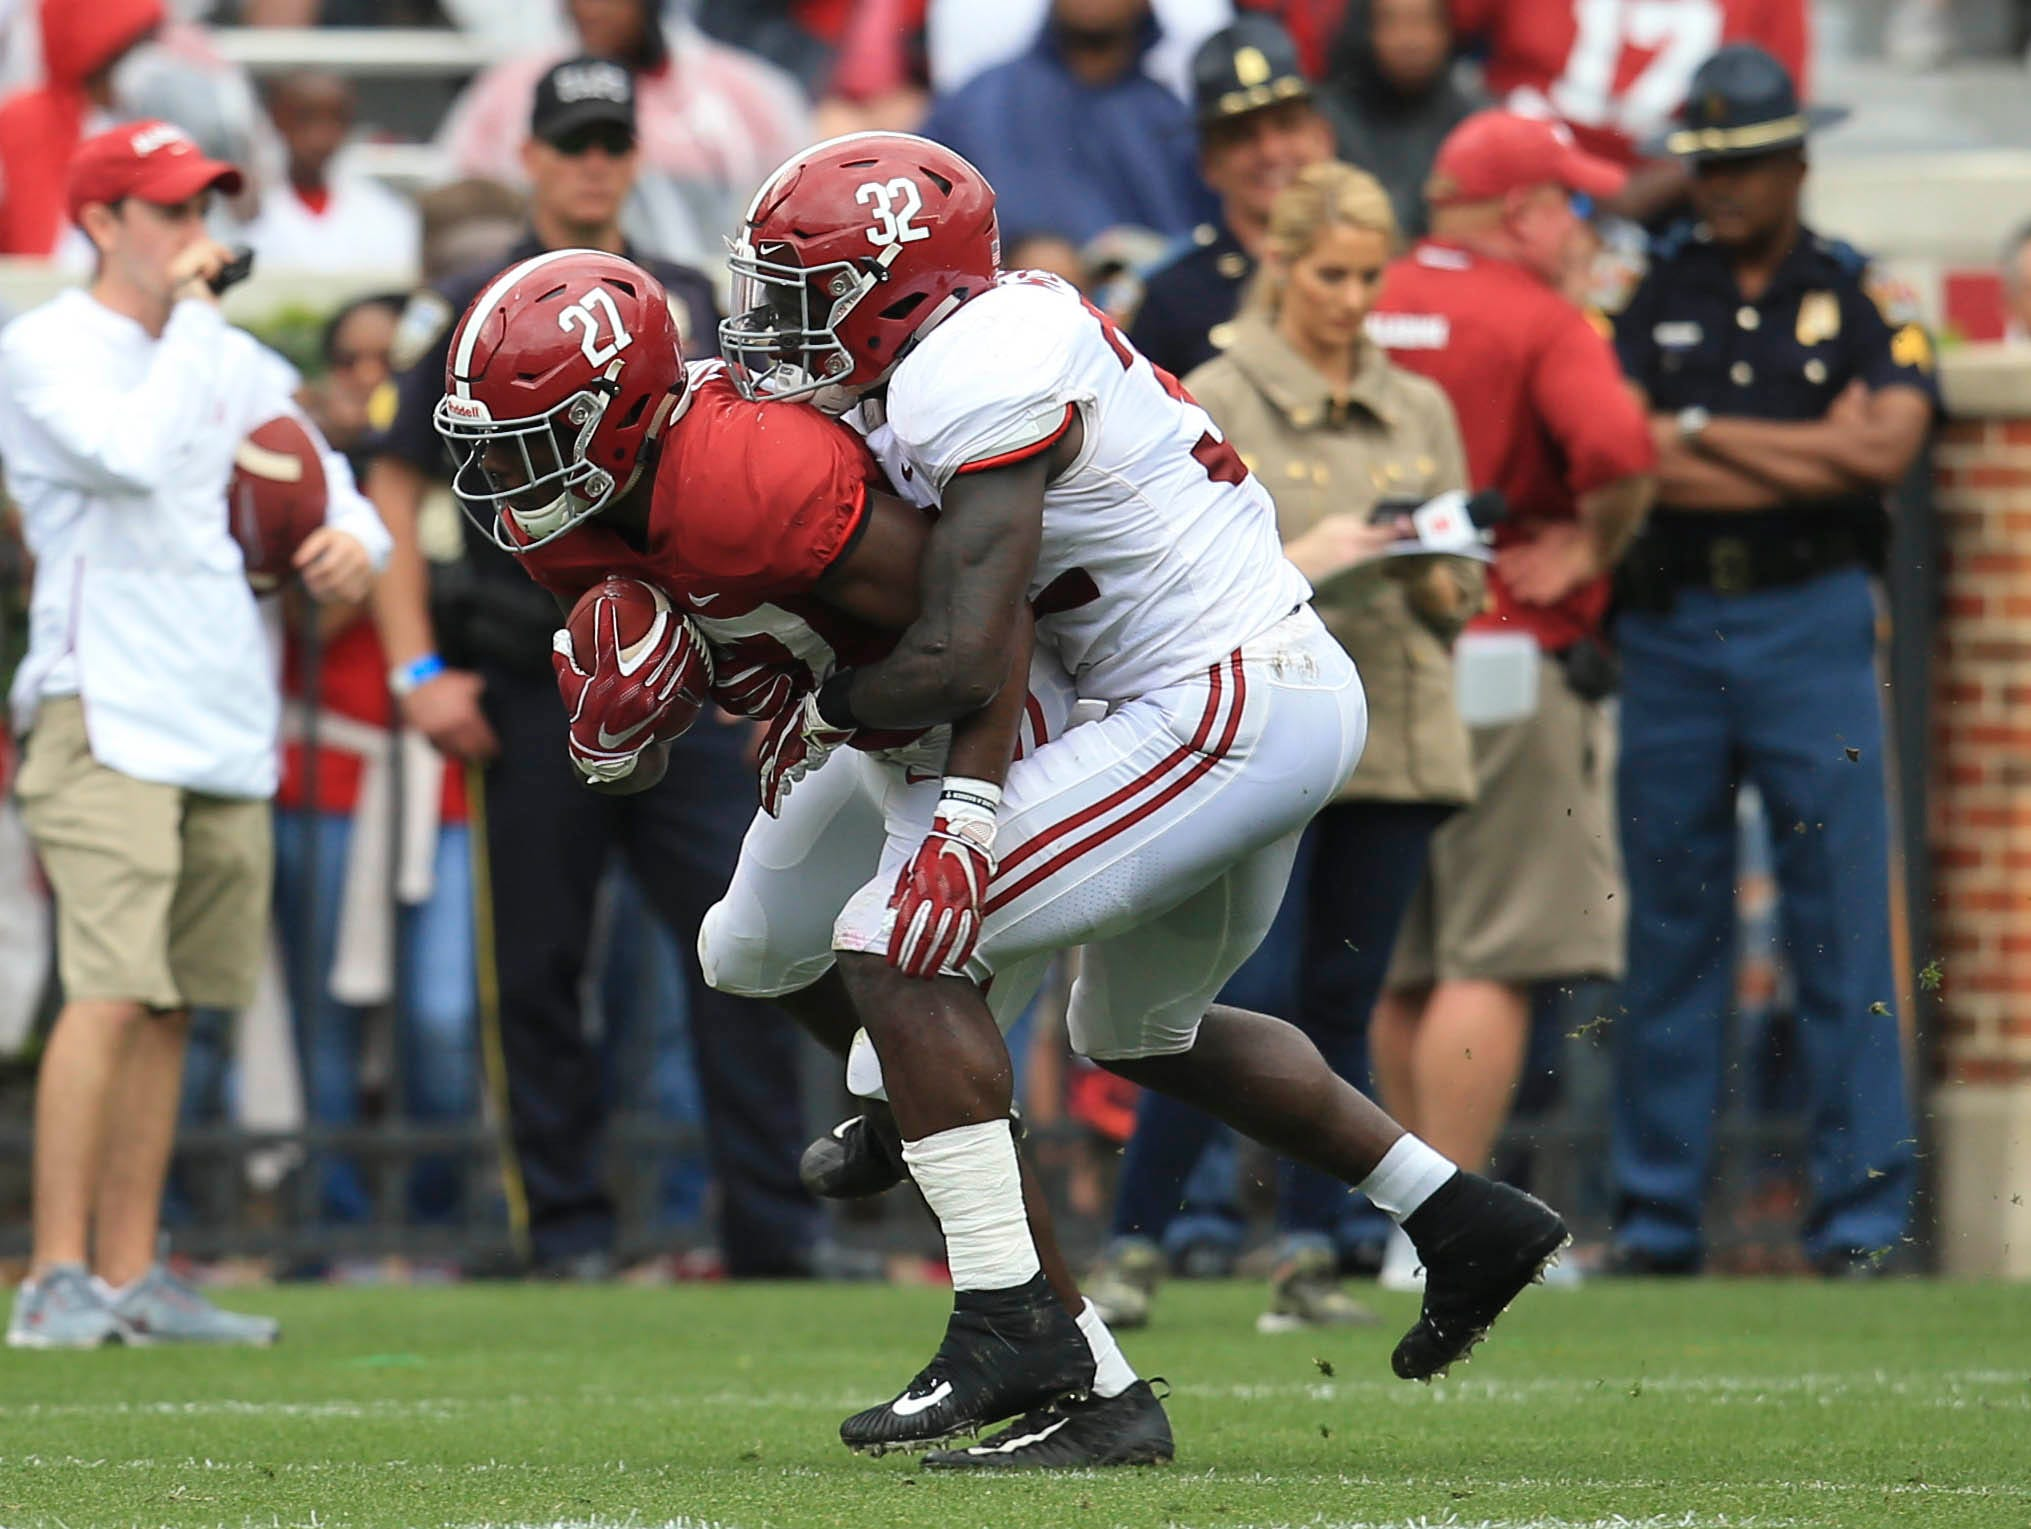 Apr 13, 2019; Tuscaloosa, AL, USA; Alabama Crimson Tide running back Jerome Ford (27) is tackled from behind by Alabama Crimson Tide linebacker Dylan Moses (32) at Bryant-Denny Stadium. Mandatory Credit: Marvin Gentry-USA TODAY Sports